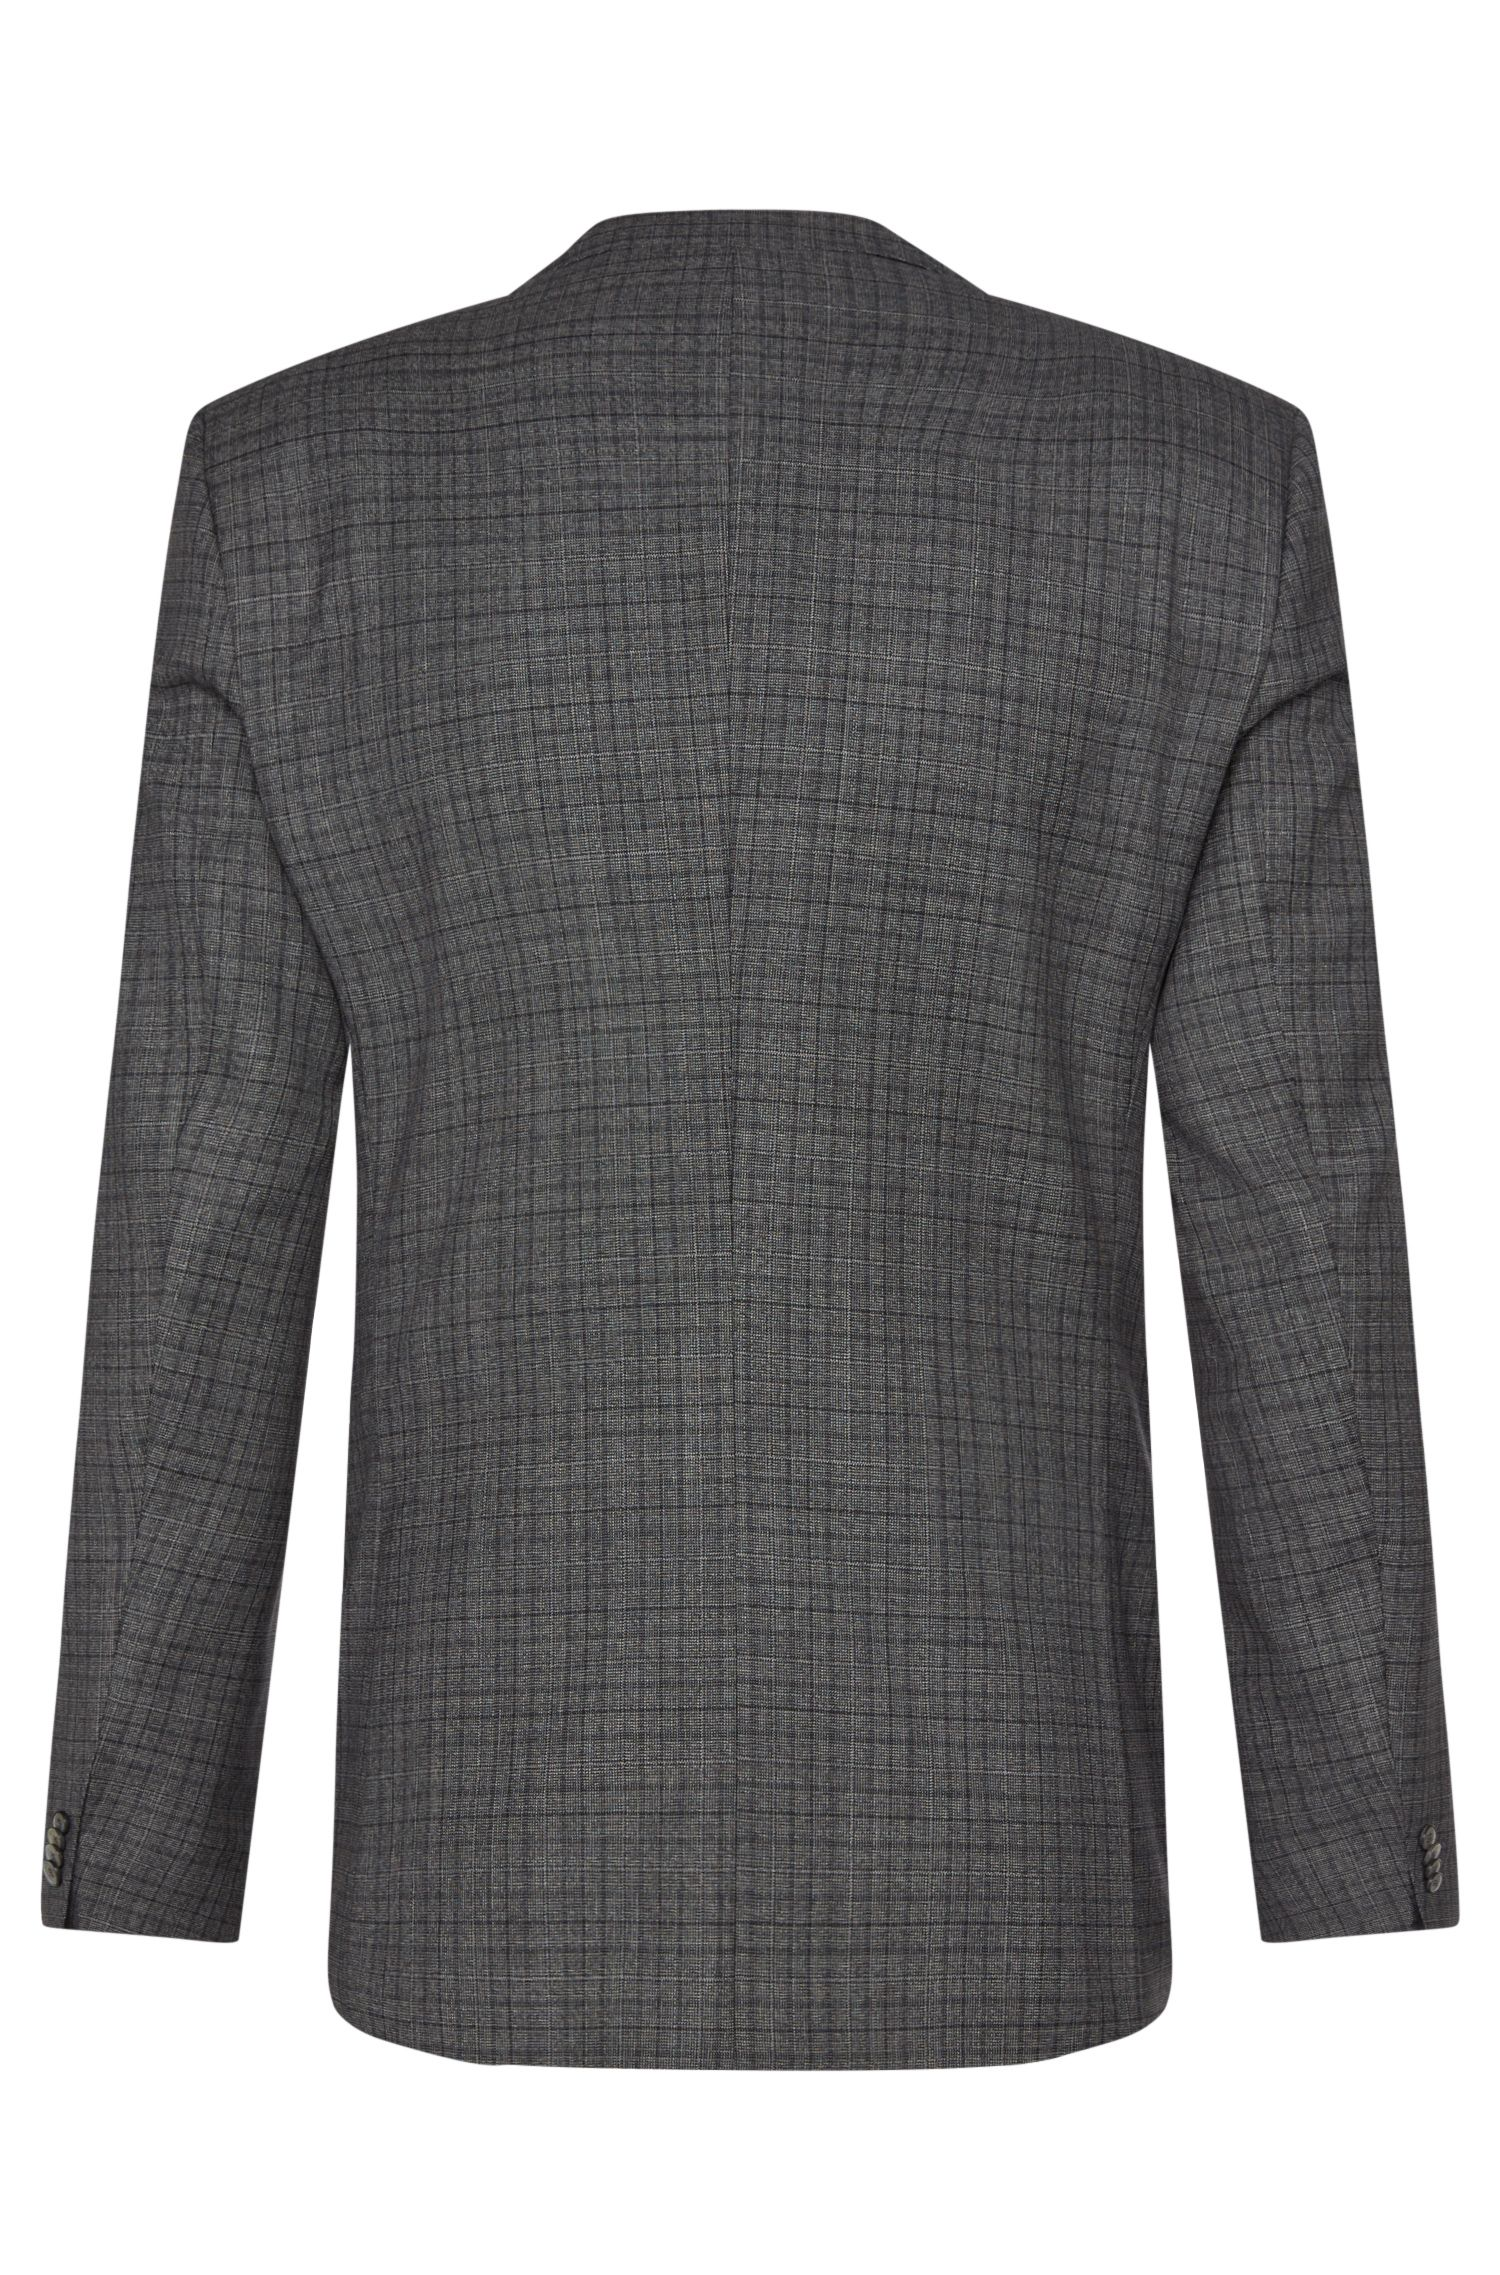 Costume Slim Fit à carreaux en pure laine vierge : « Hutson3/Gander1 »